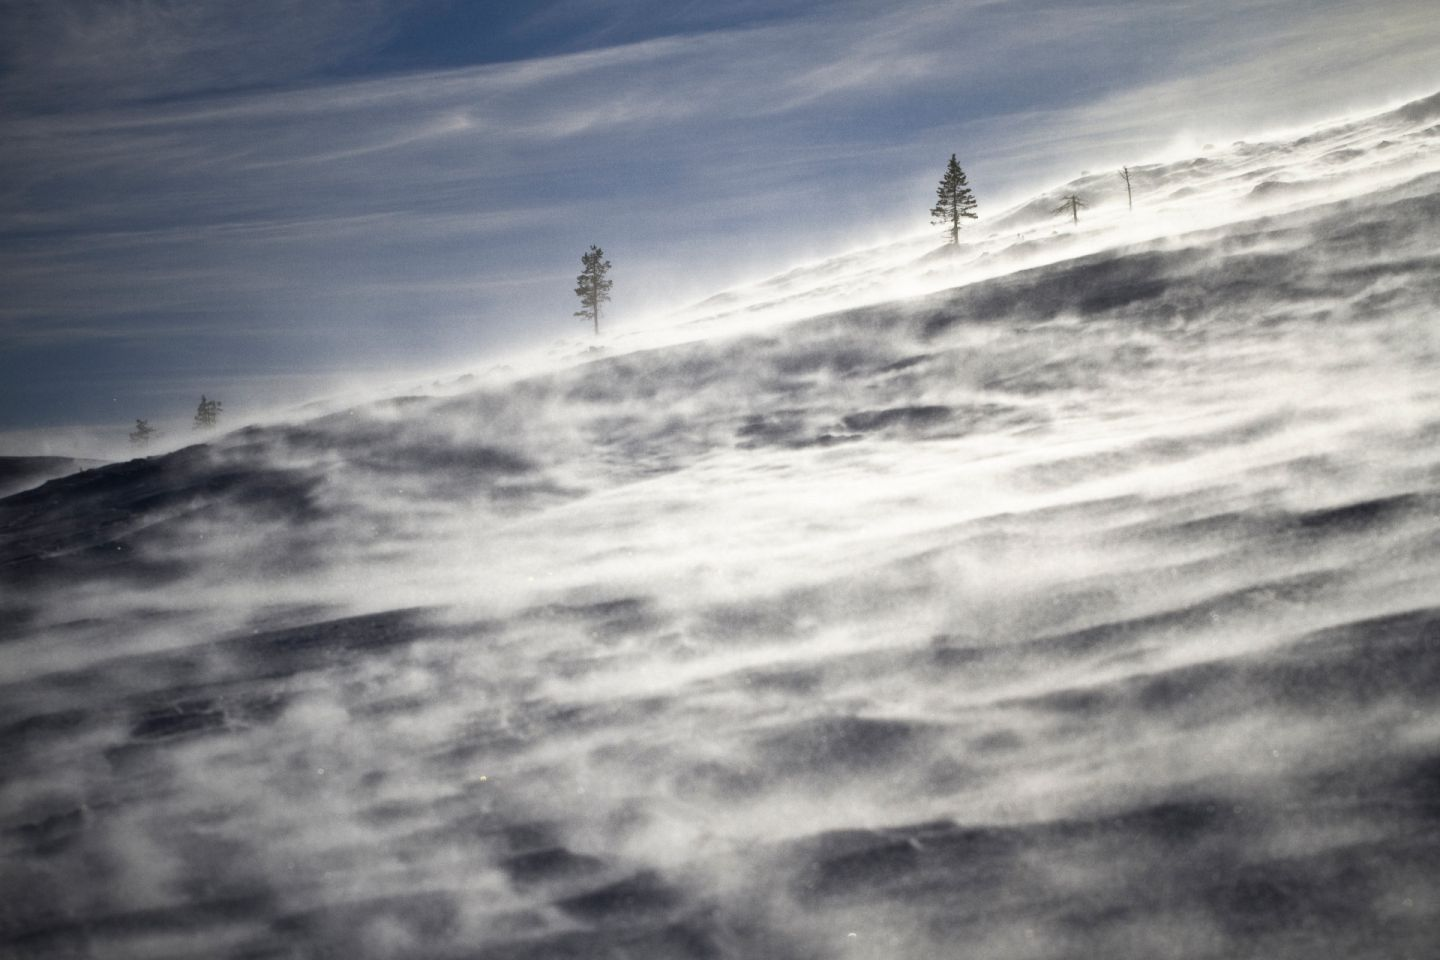 Winter storm on a Lapland fell